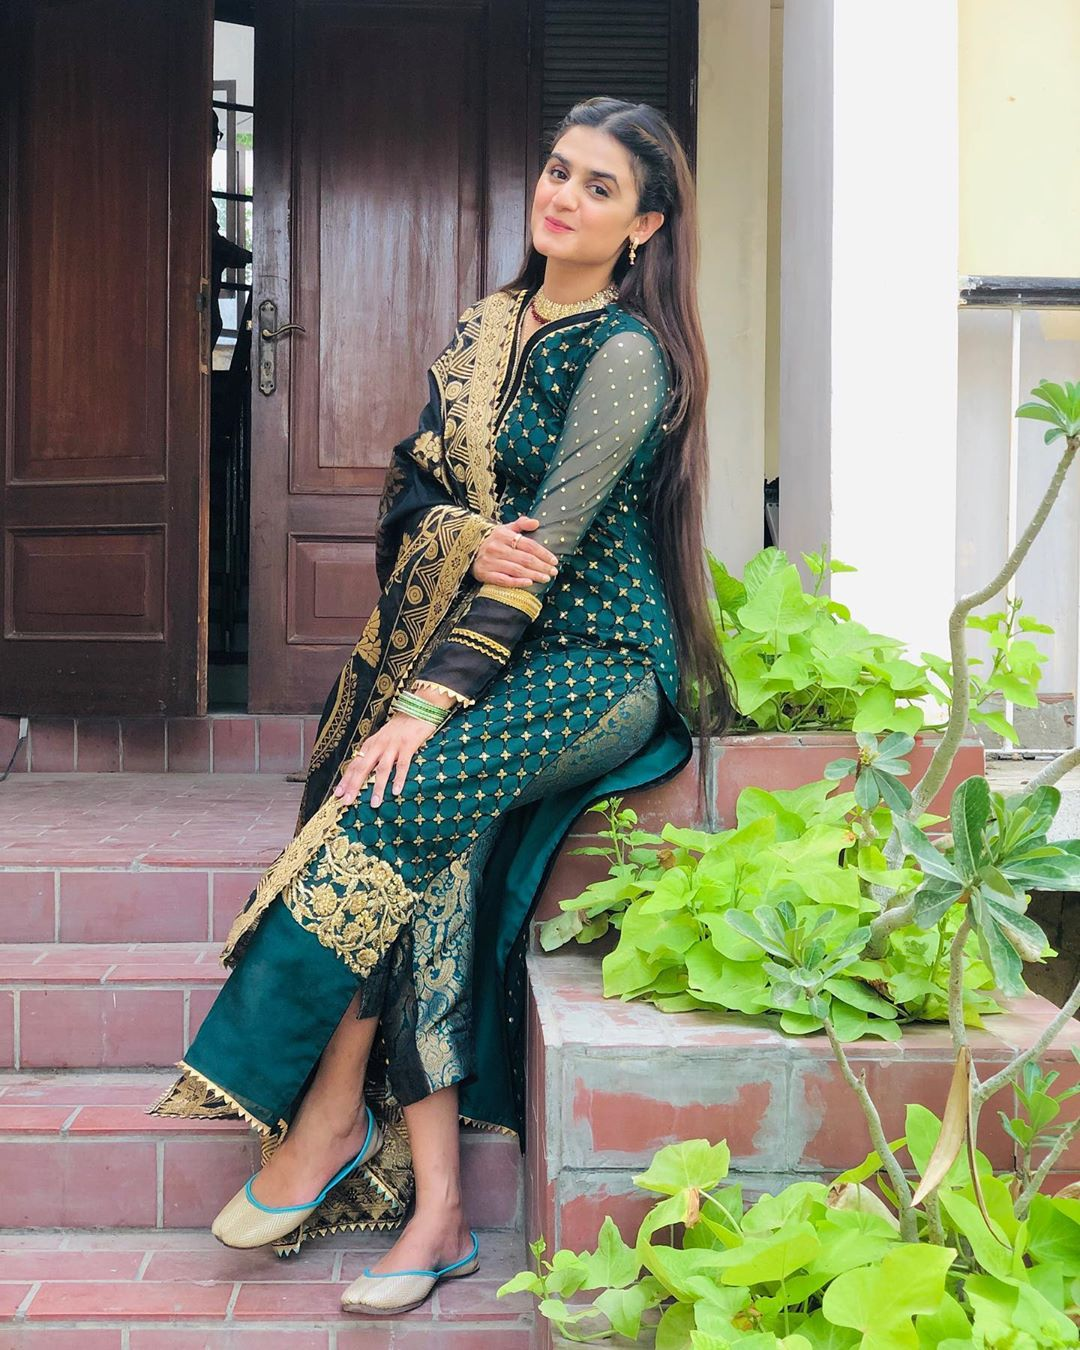 Actress Hira Mani Looking Gorgeous in her Latest Pictures